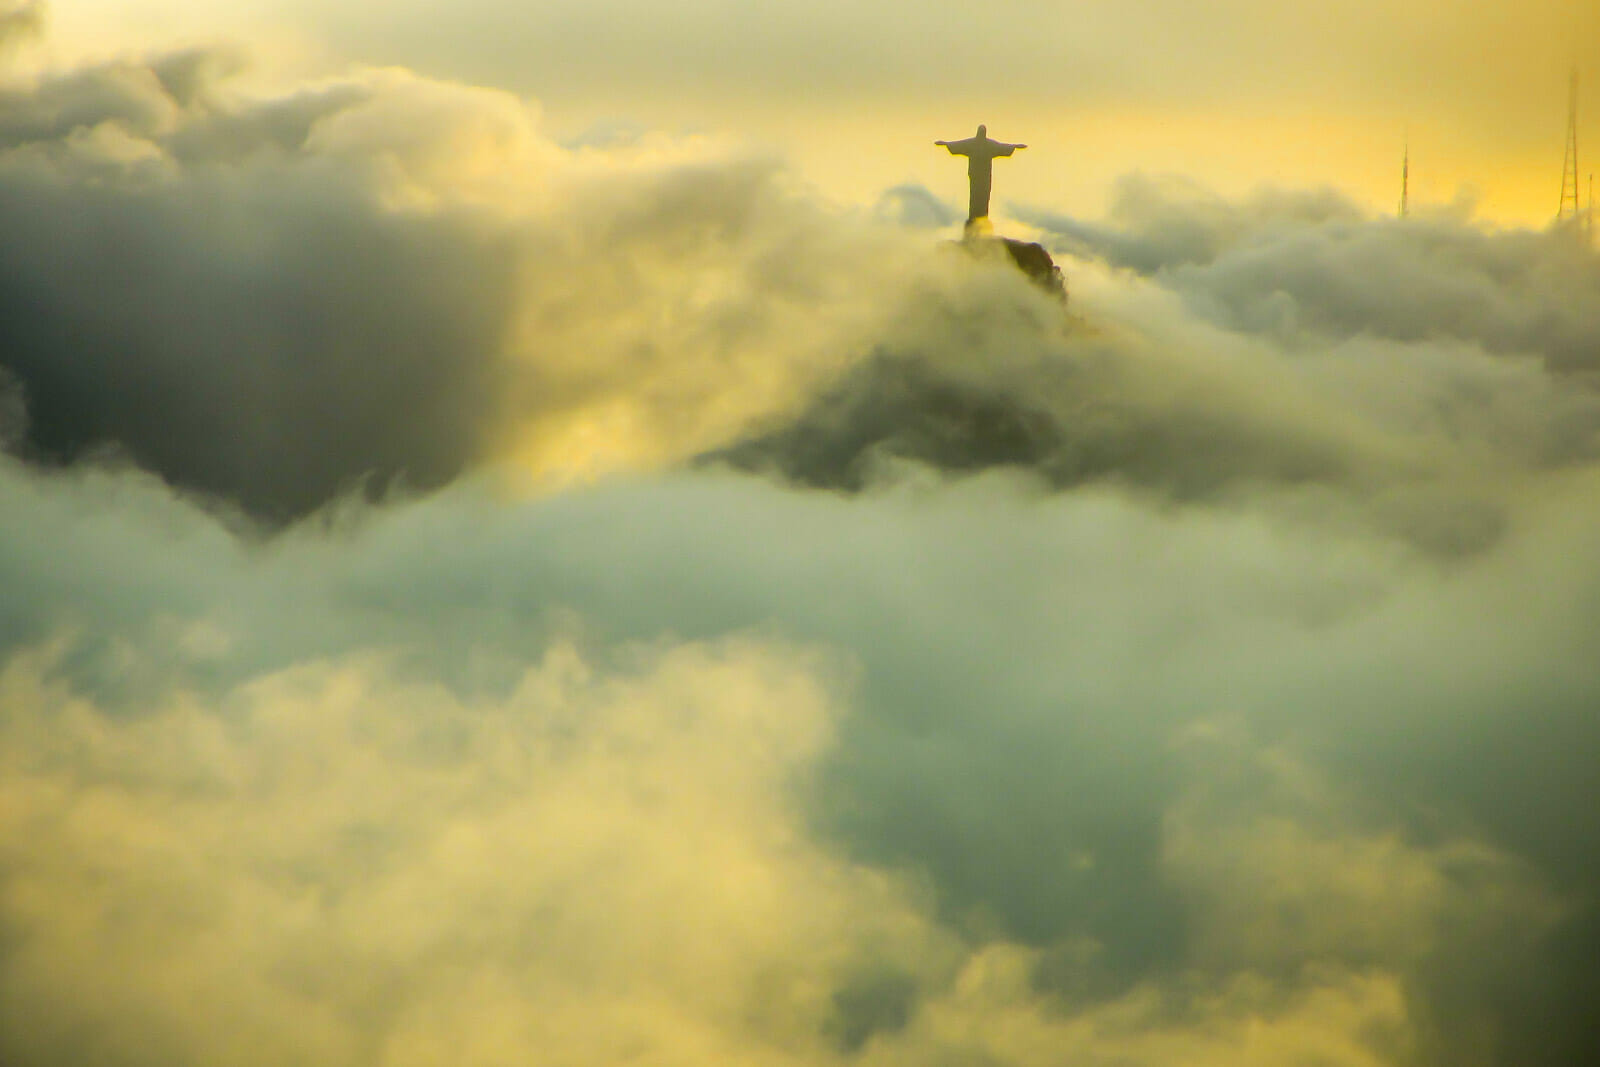 Christ the Redeemer as seen from Sugarloaf Mountain